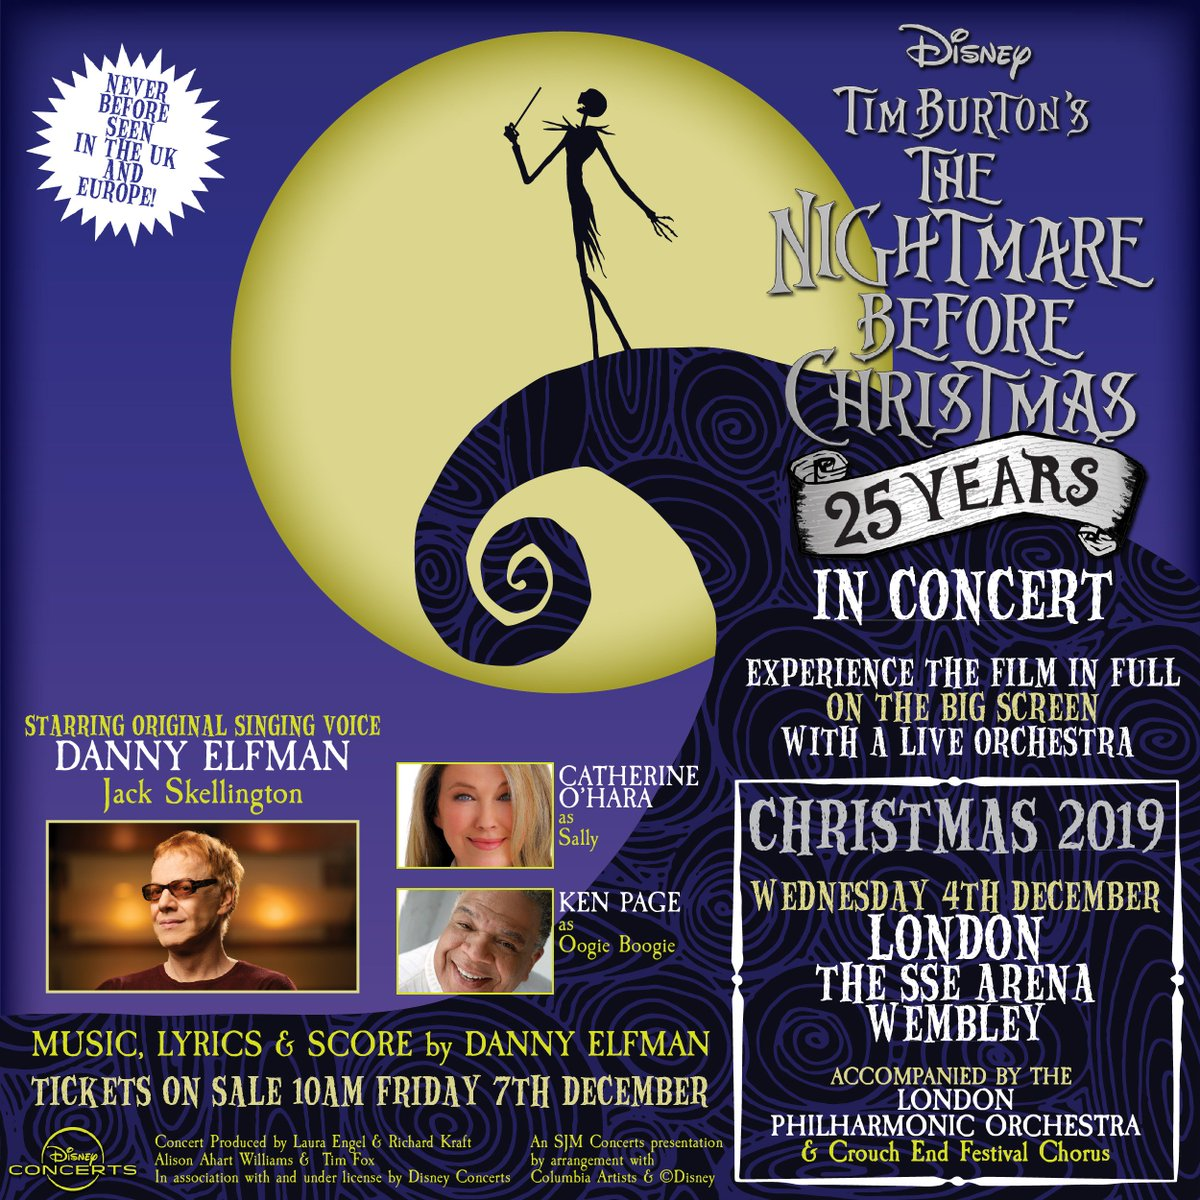 Just announced. Tim Burtons The Nightmare Before Christmas Live in Concert with Danny Elfman, Catherine OHara and Ken Page performing live here in December 2019. Get hold of tickets here on Friday: bit.ly/NightmareBefor…